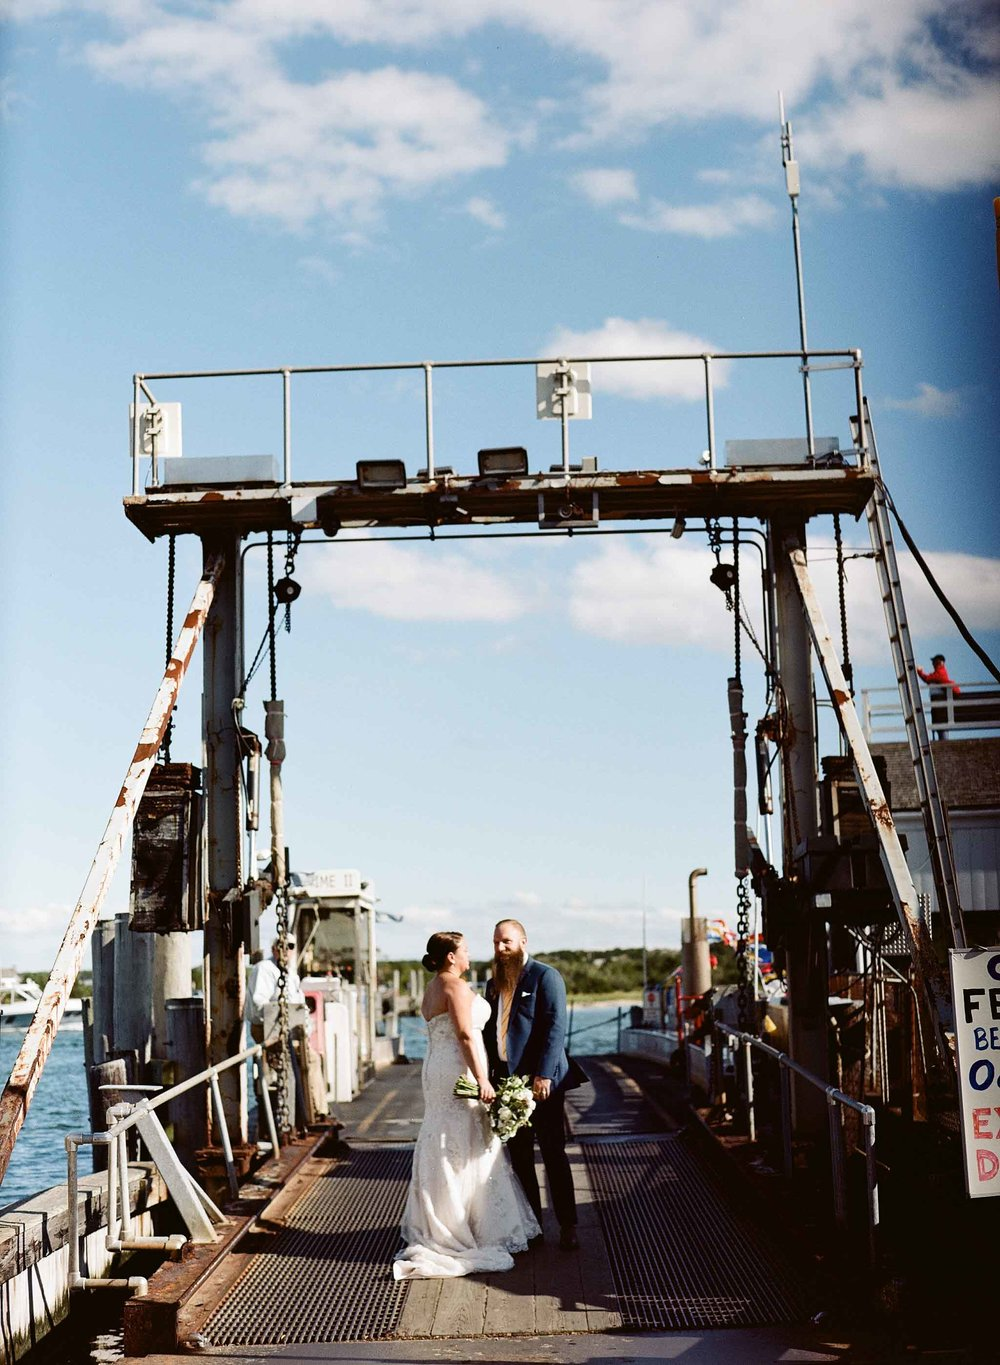 Marthas-vineyard-wedding-35.jpg